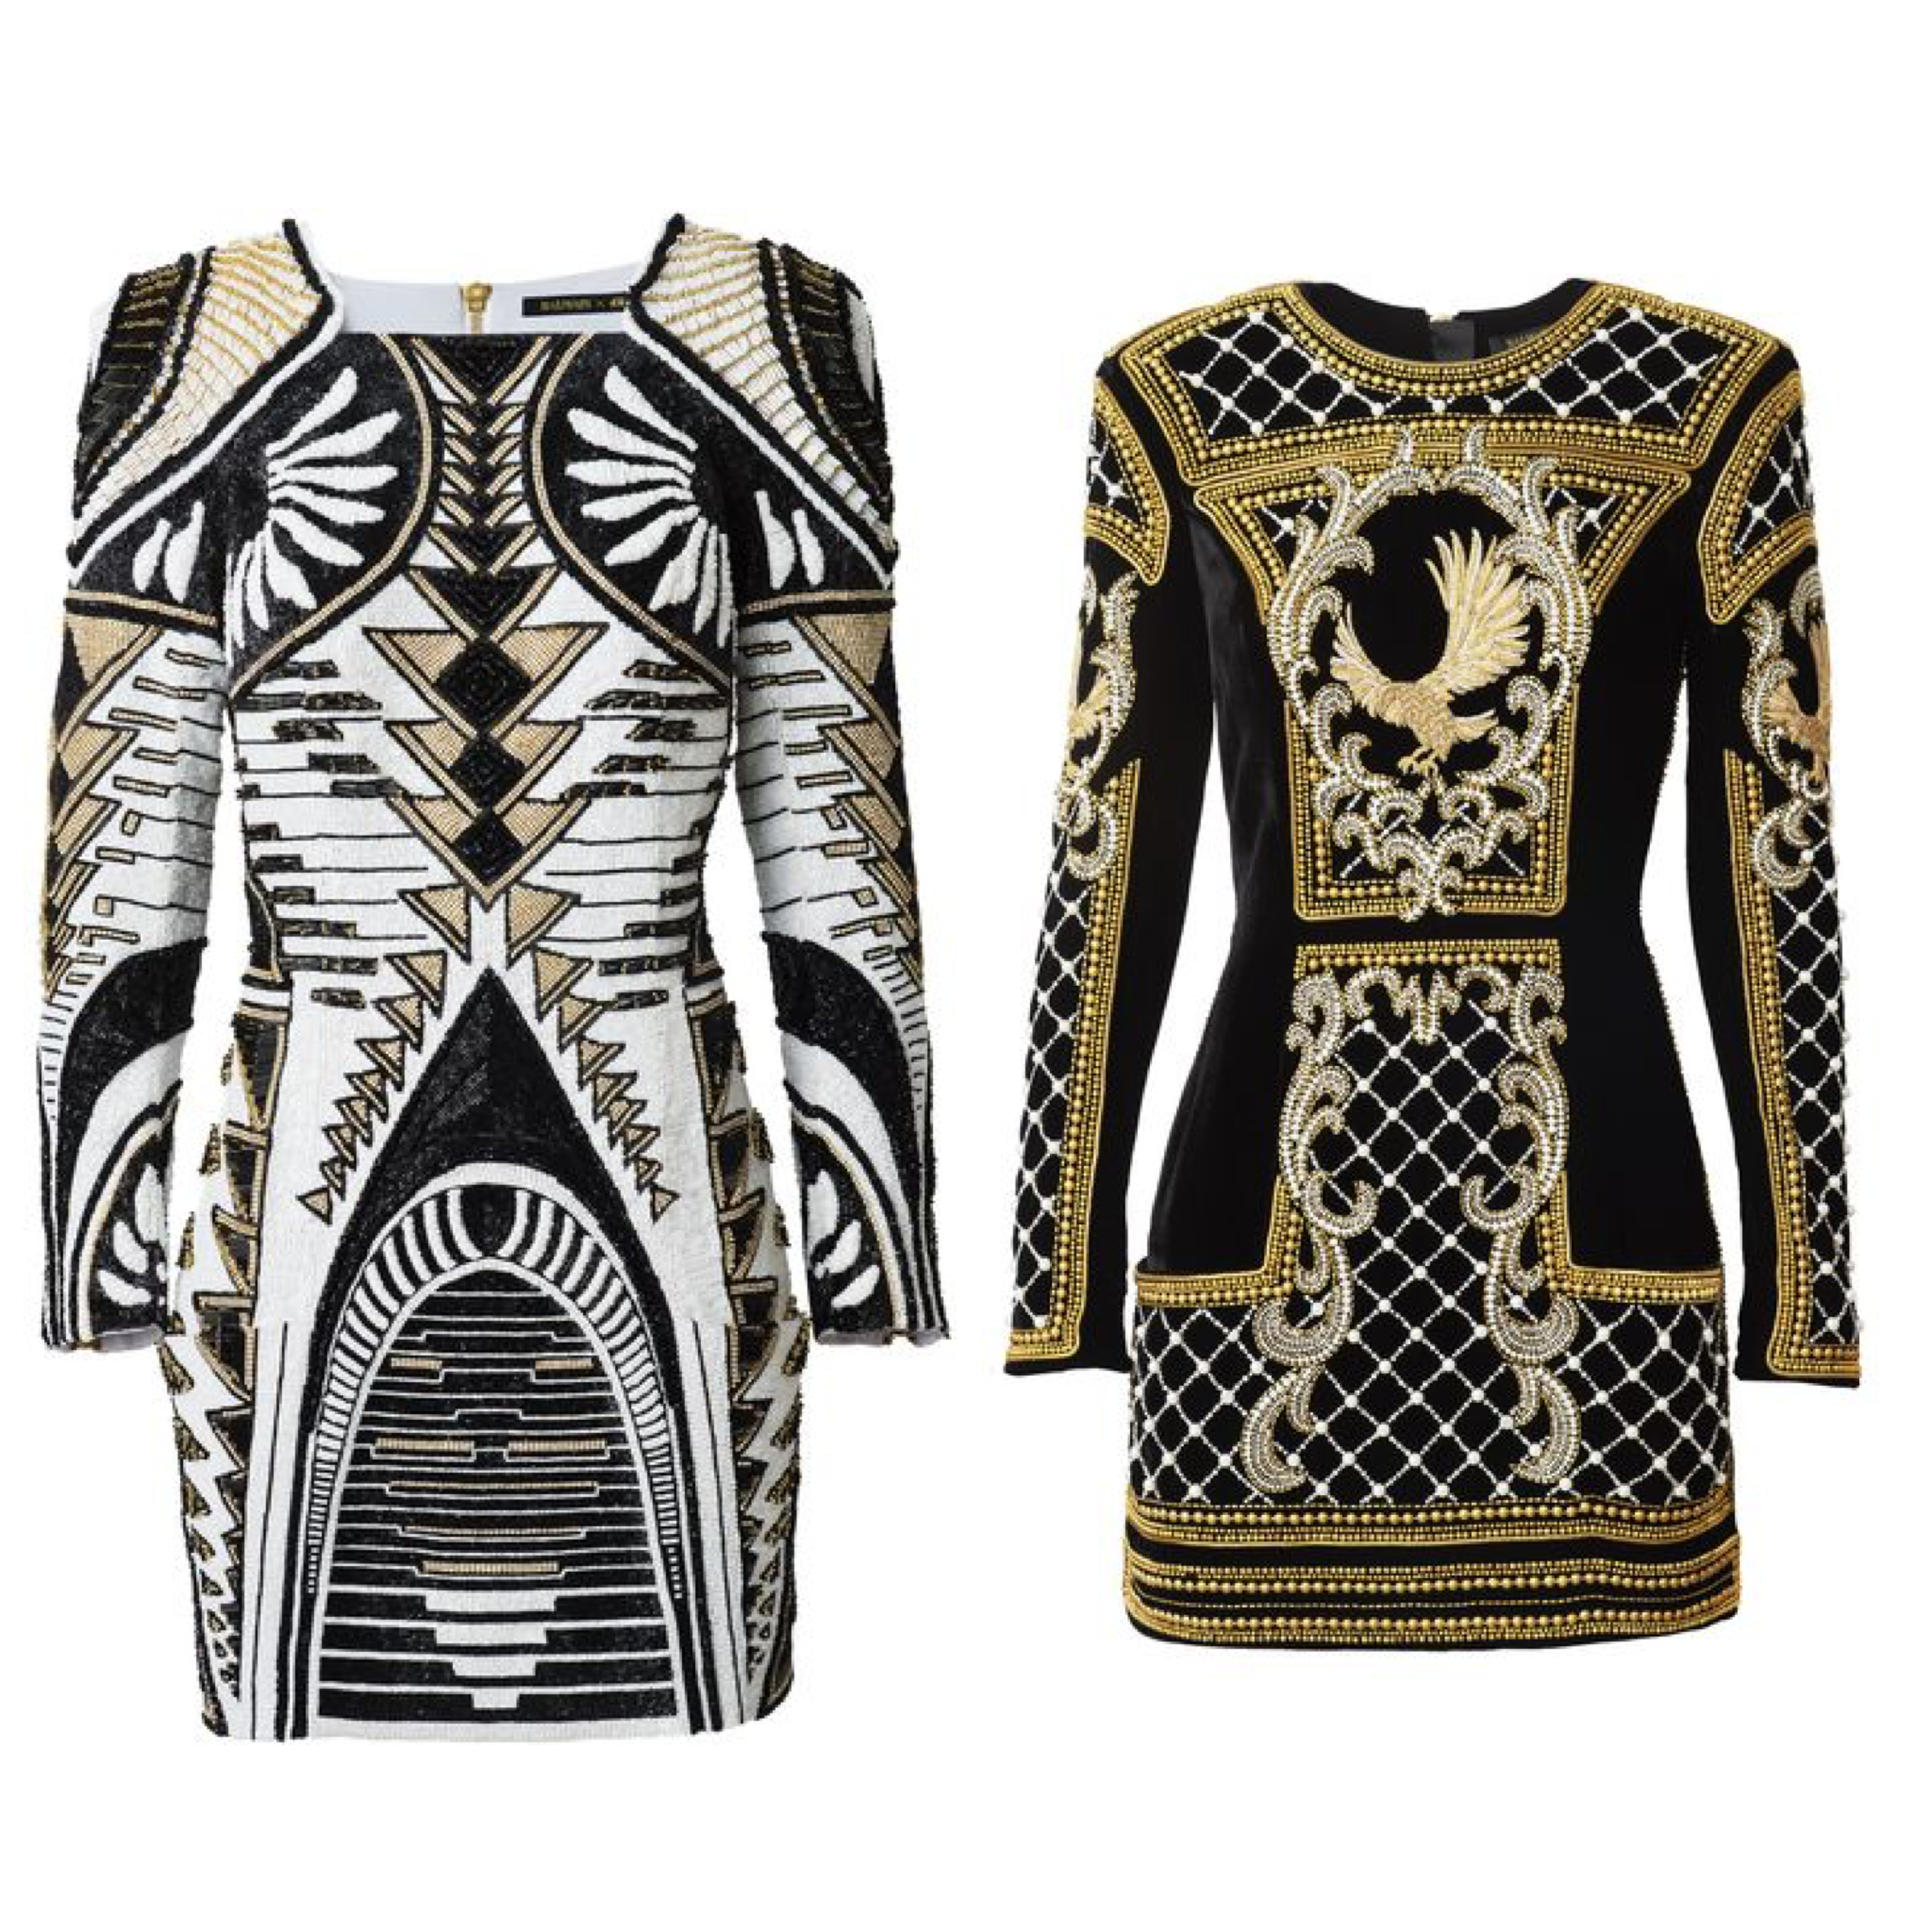 Balmain HM dress